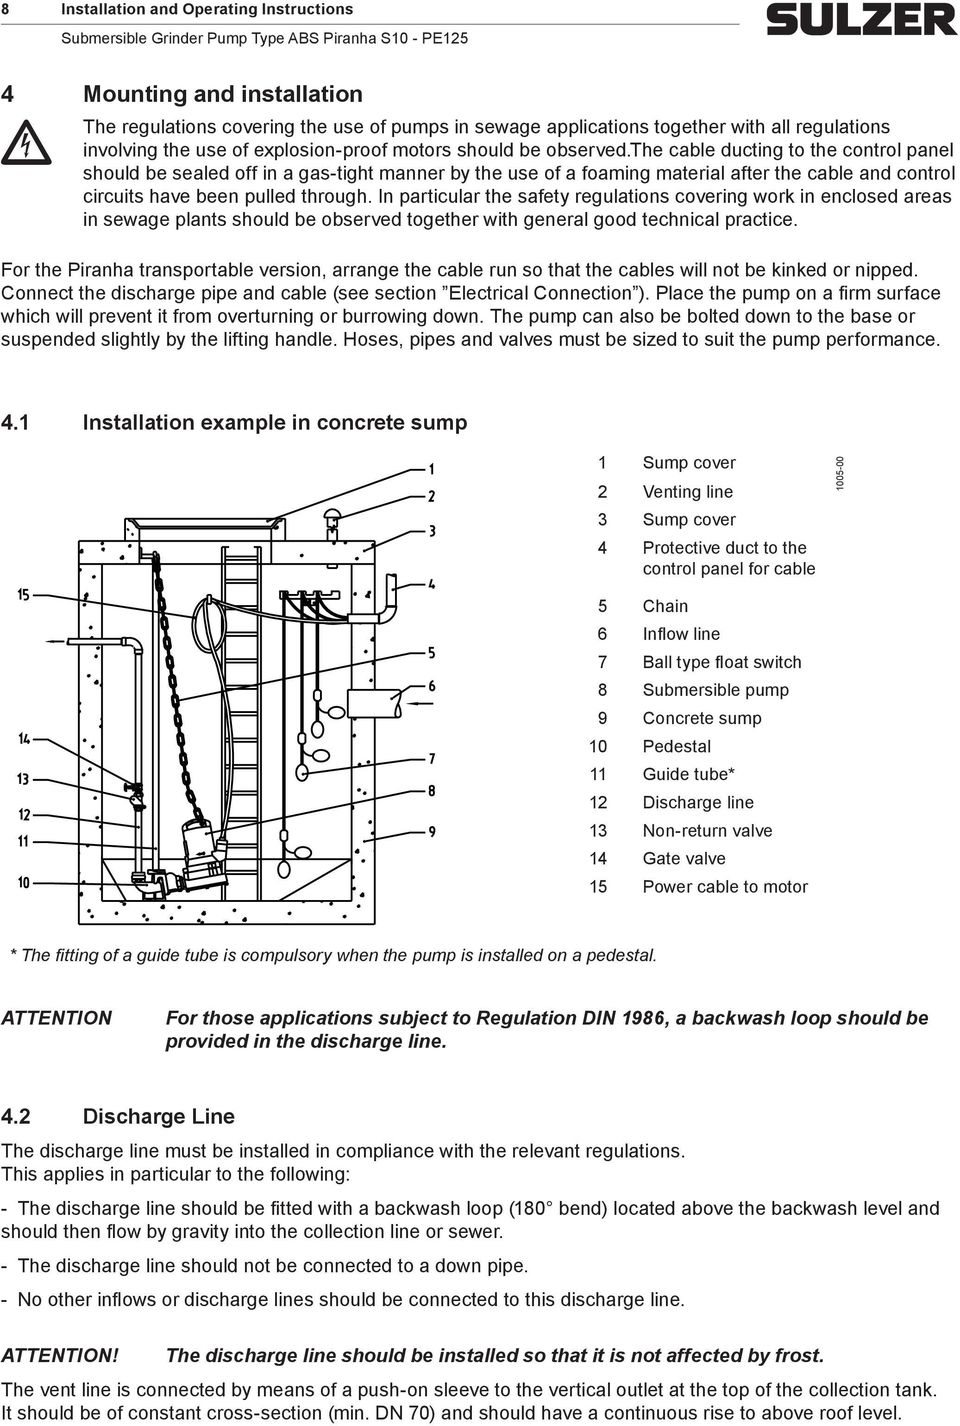 Installation Operating And Maintenance Instructions Pdf Well Pump Wiring Connection The Cable Ducting To Control Panel Should Be Sealed Off In A Gas Tight